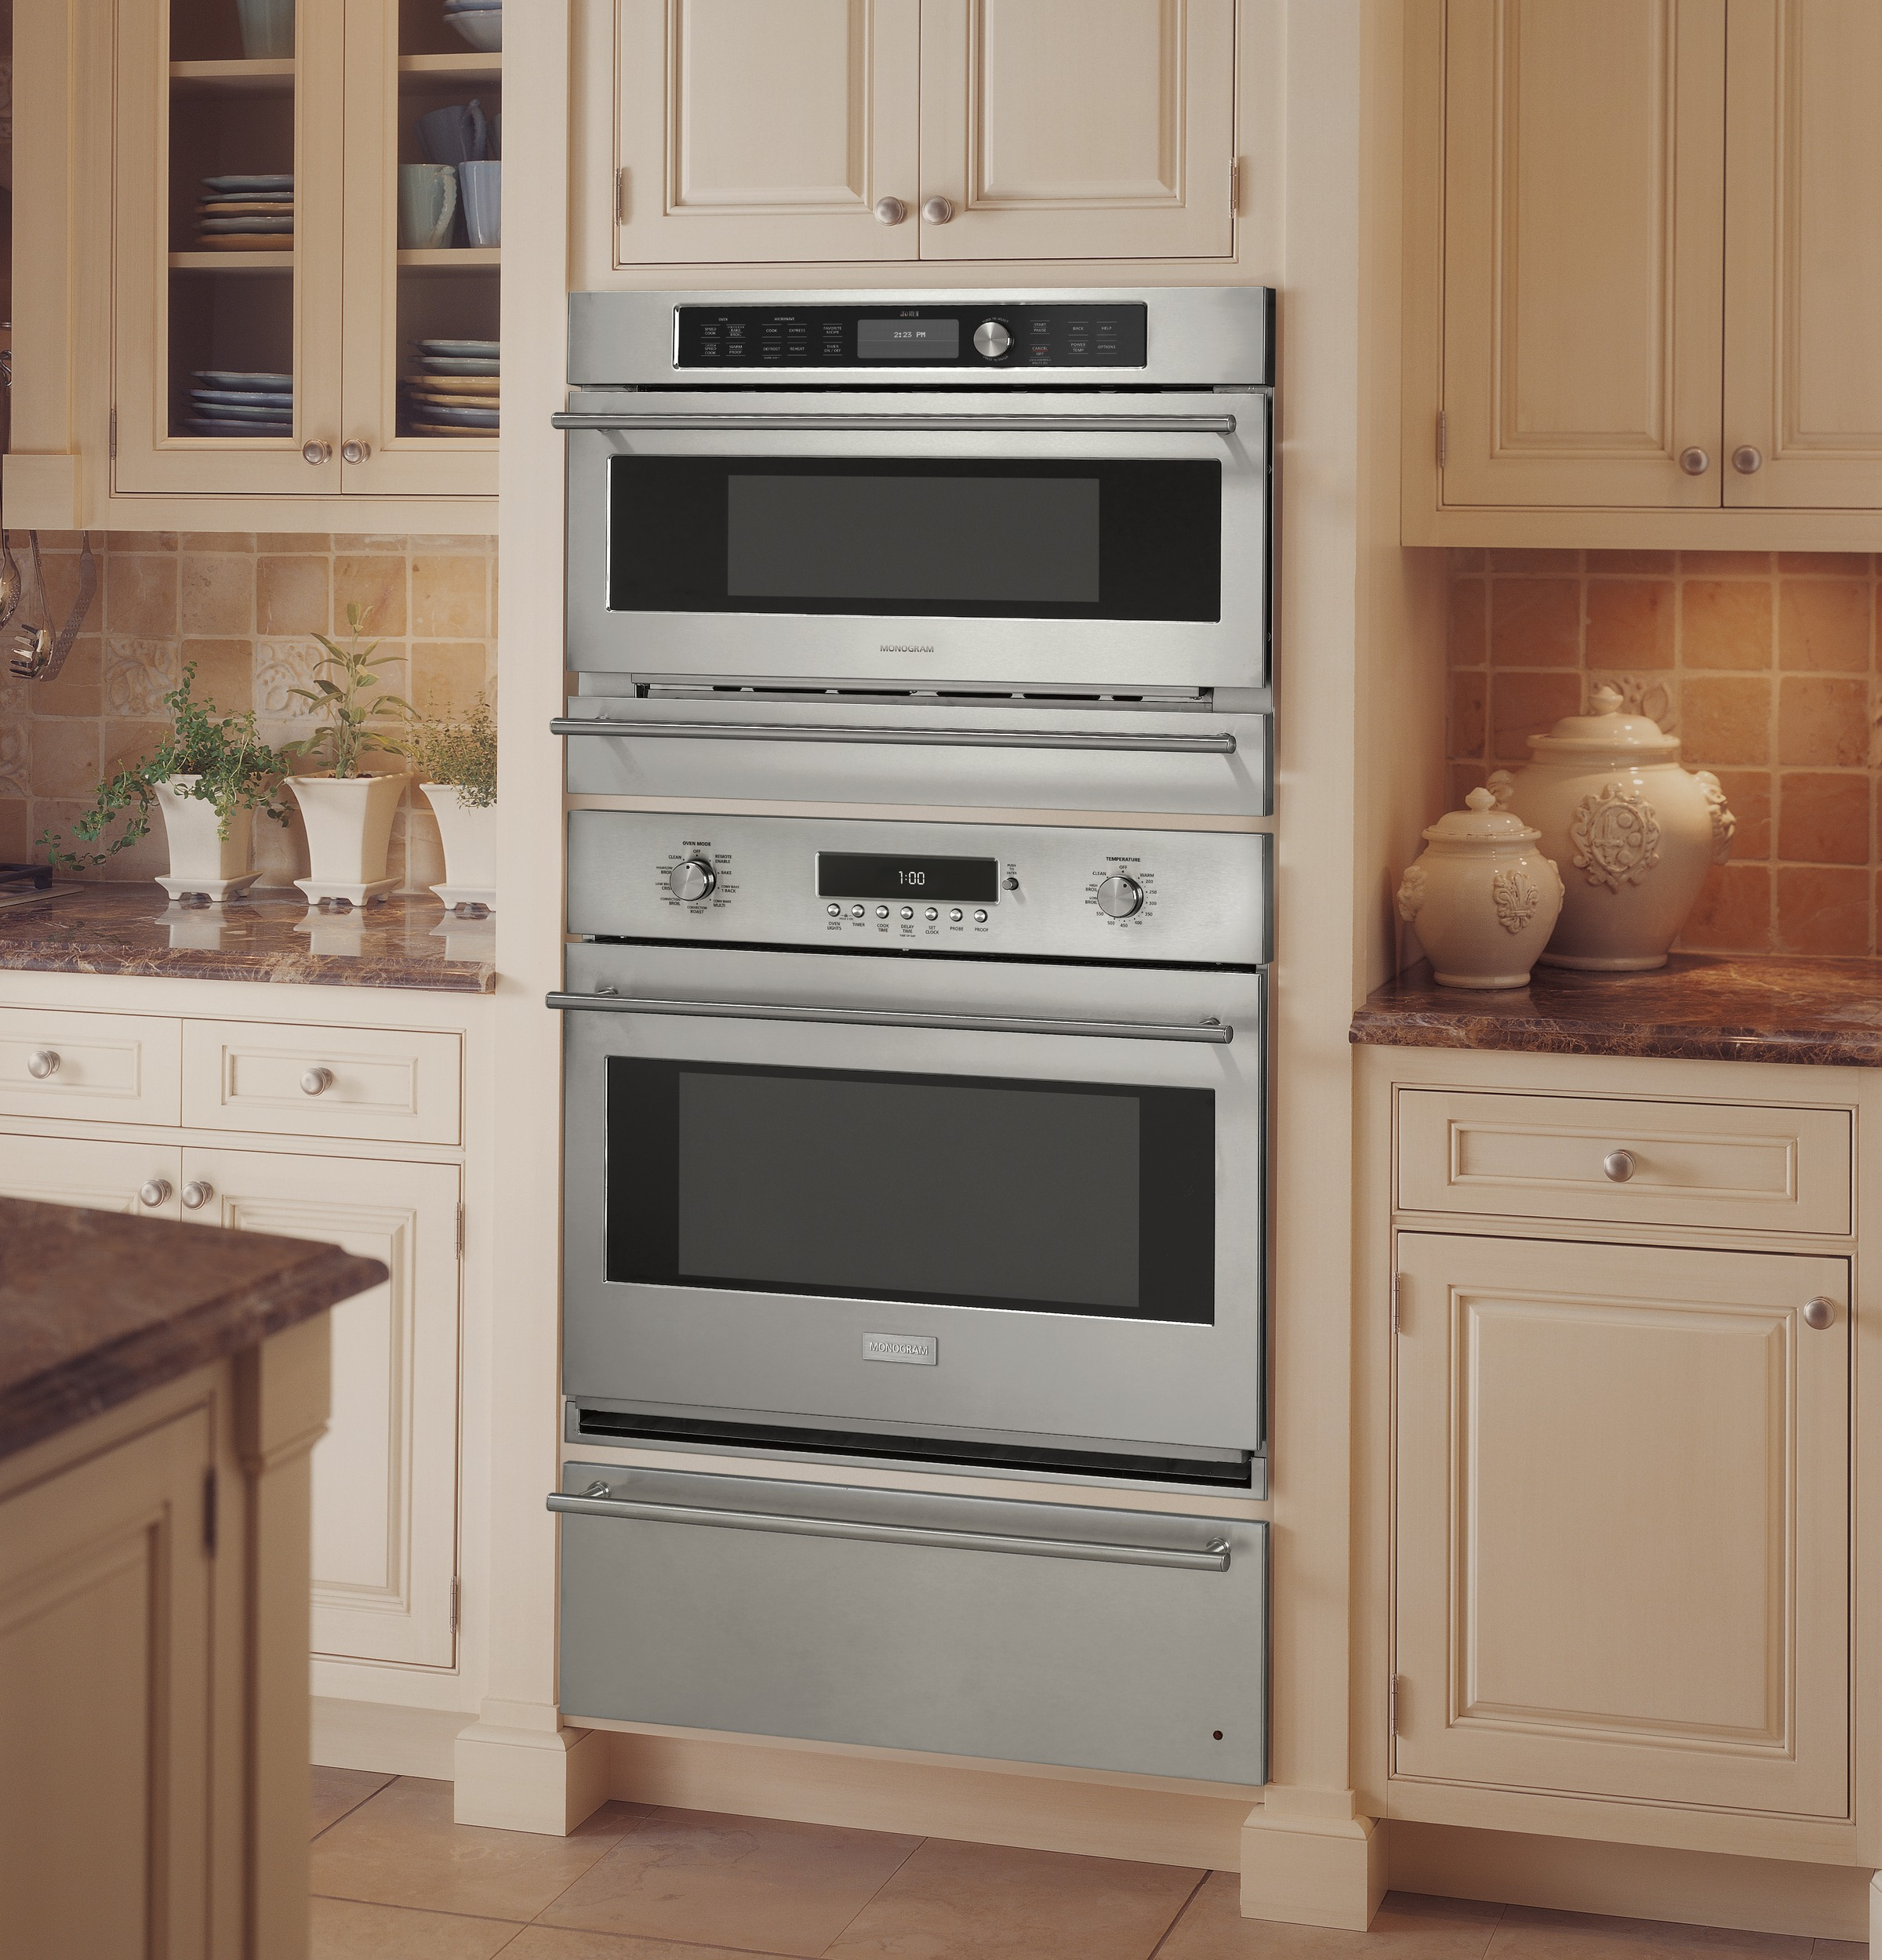 Model: ZSC2201JSS | Monogram Monogram Built-In Oven with Advantium® Speedcook Technology- 240V